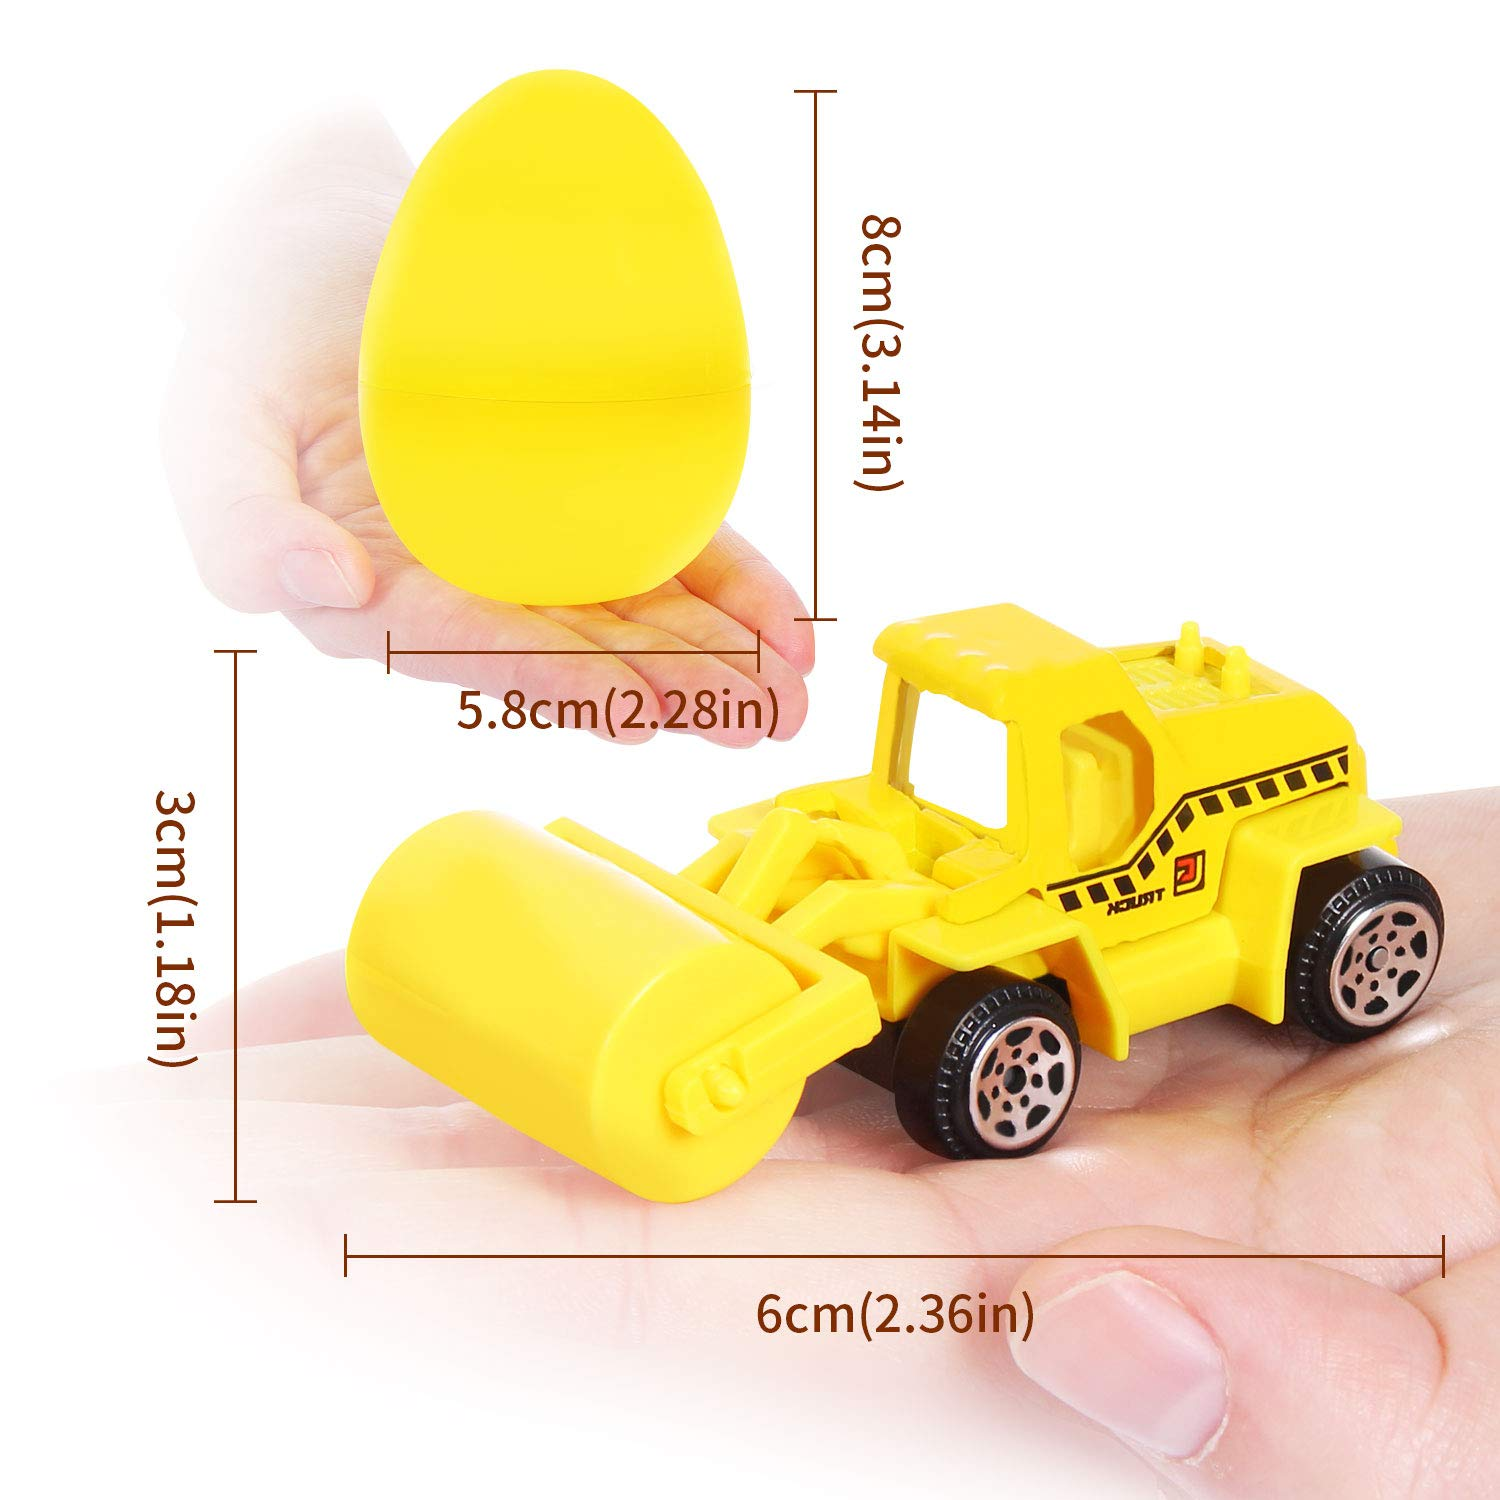 12 Pcs Toys Filled Easter Egg Filling Treats and Party Favor Toch 3.2 Inches Colorful Surprise Eggs with 12 Different Mini Vehicles for Kids Easter Hunt